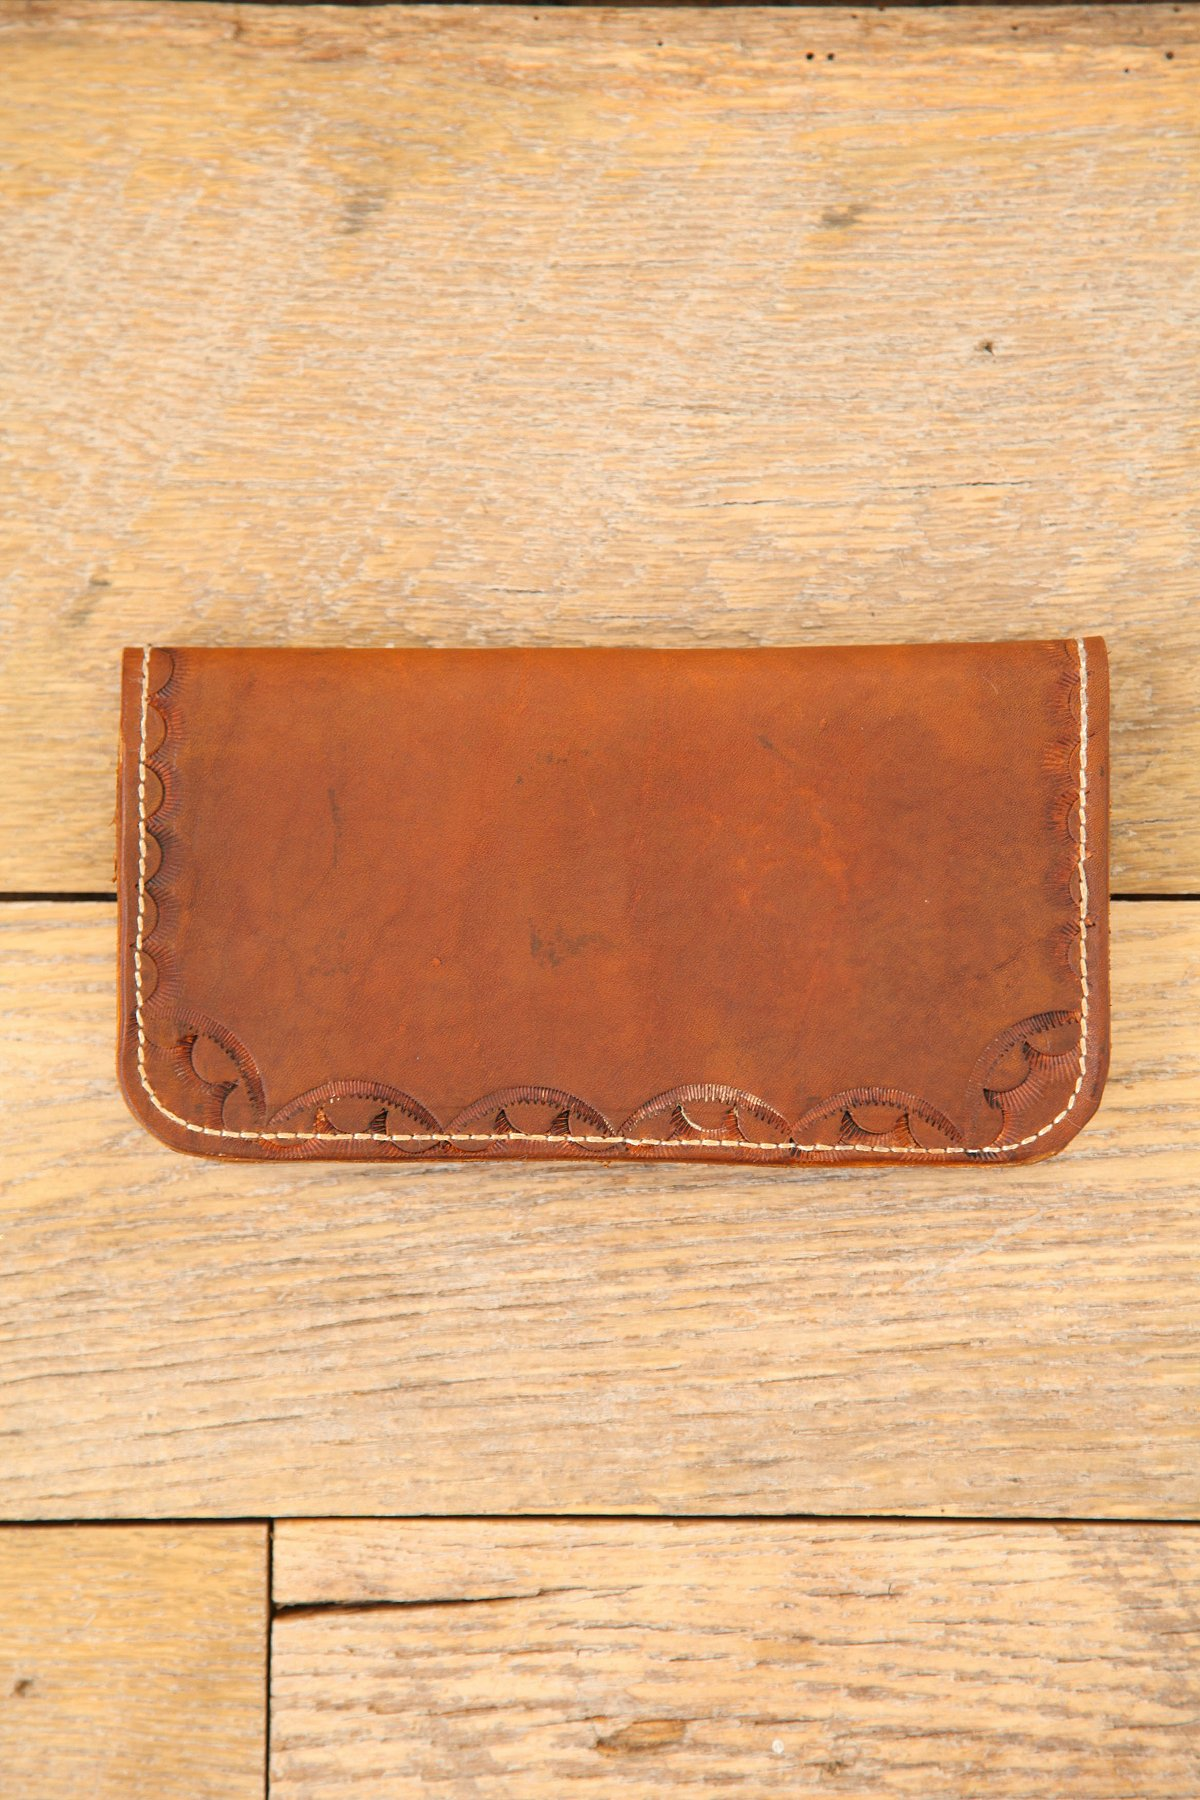 Vintage Duo Fold Leather Wallet